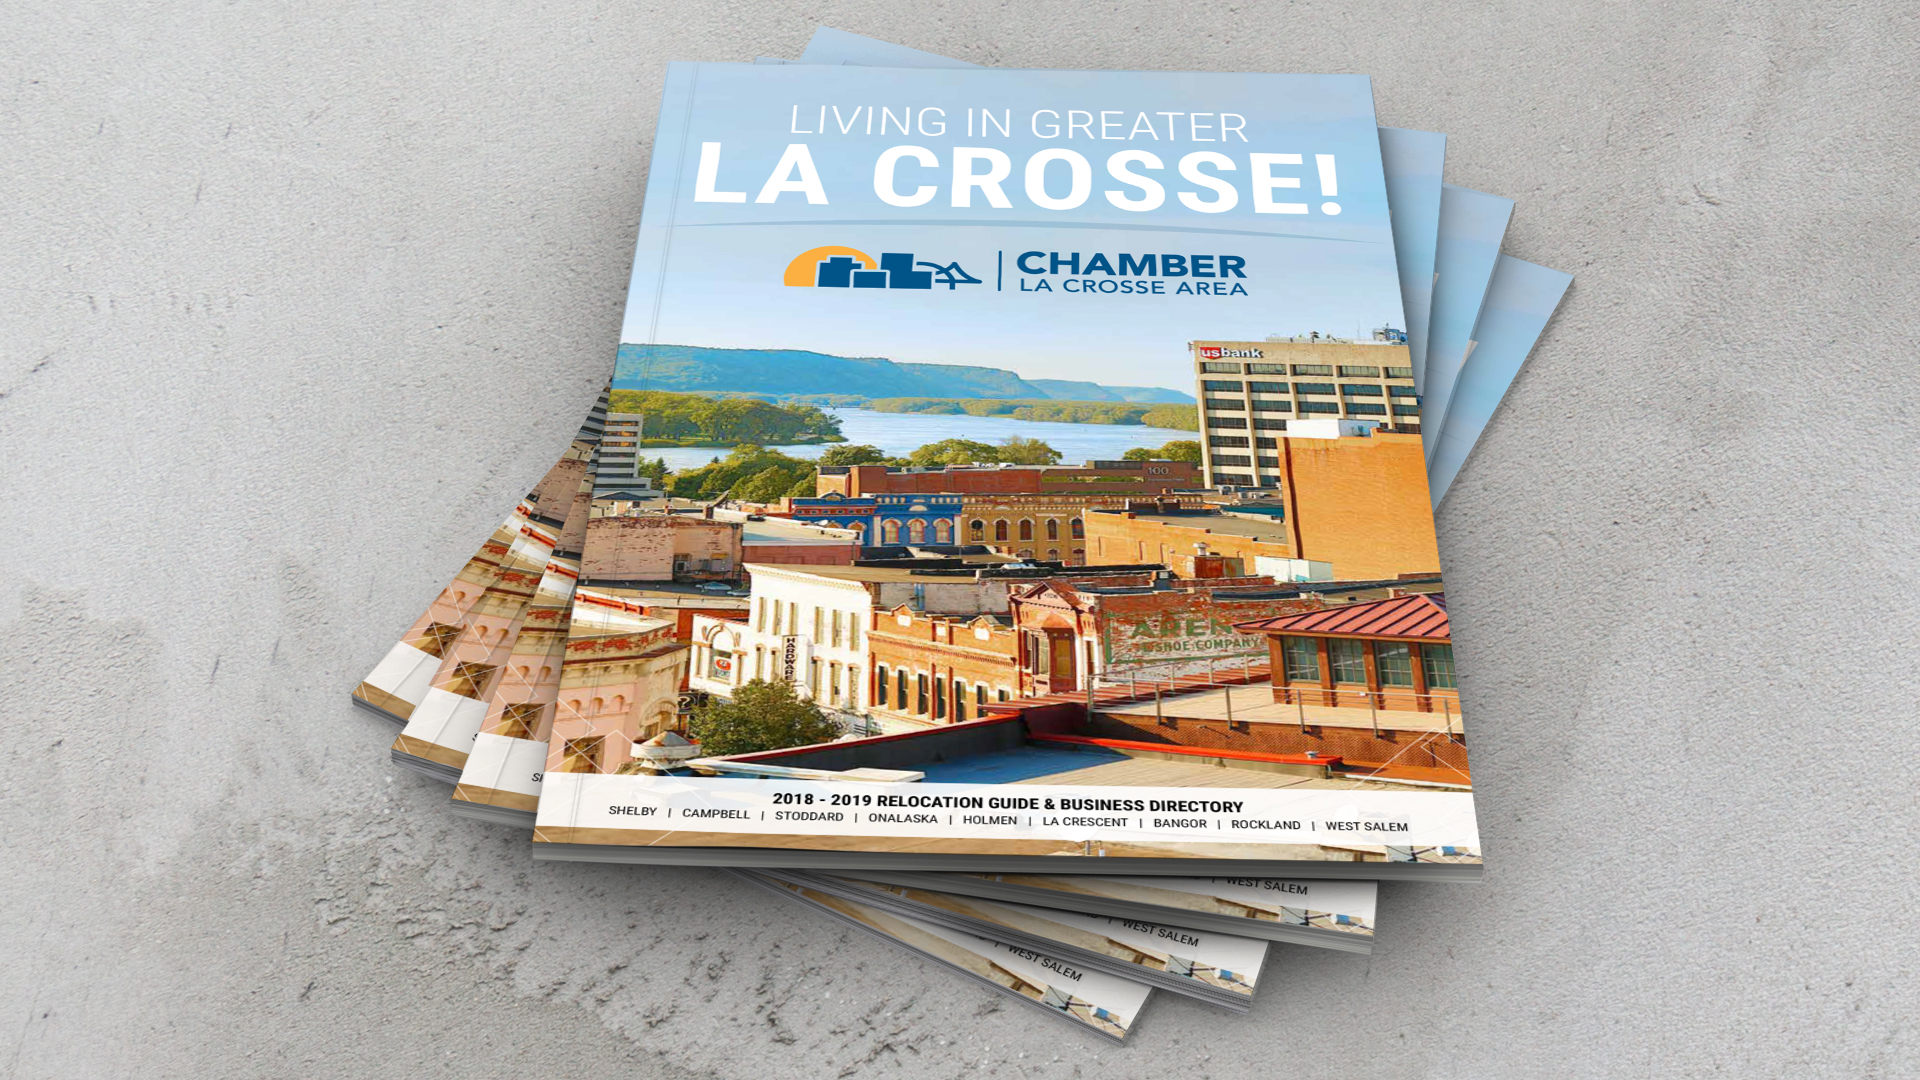 La Crosse Chamber 2018 - 2019 Relocation Guide and Business Directory Mockup